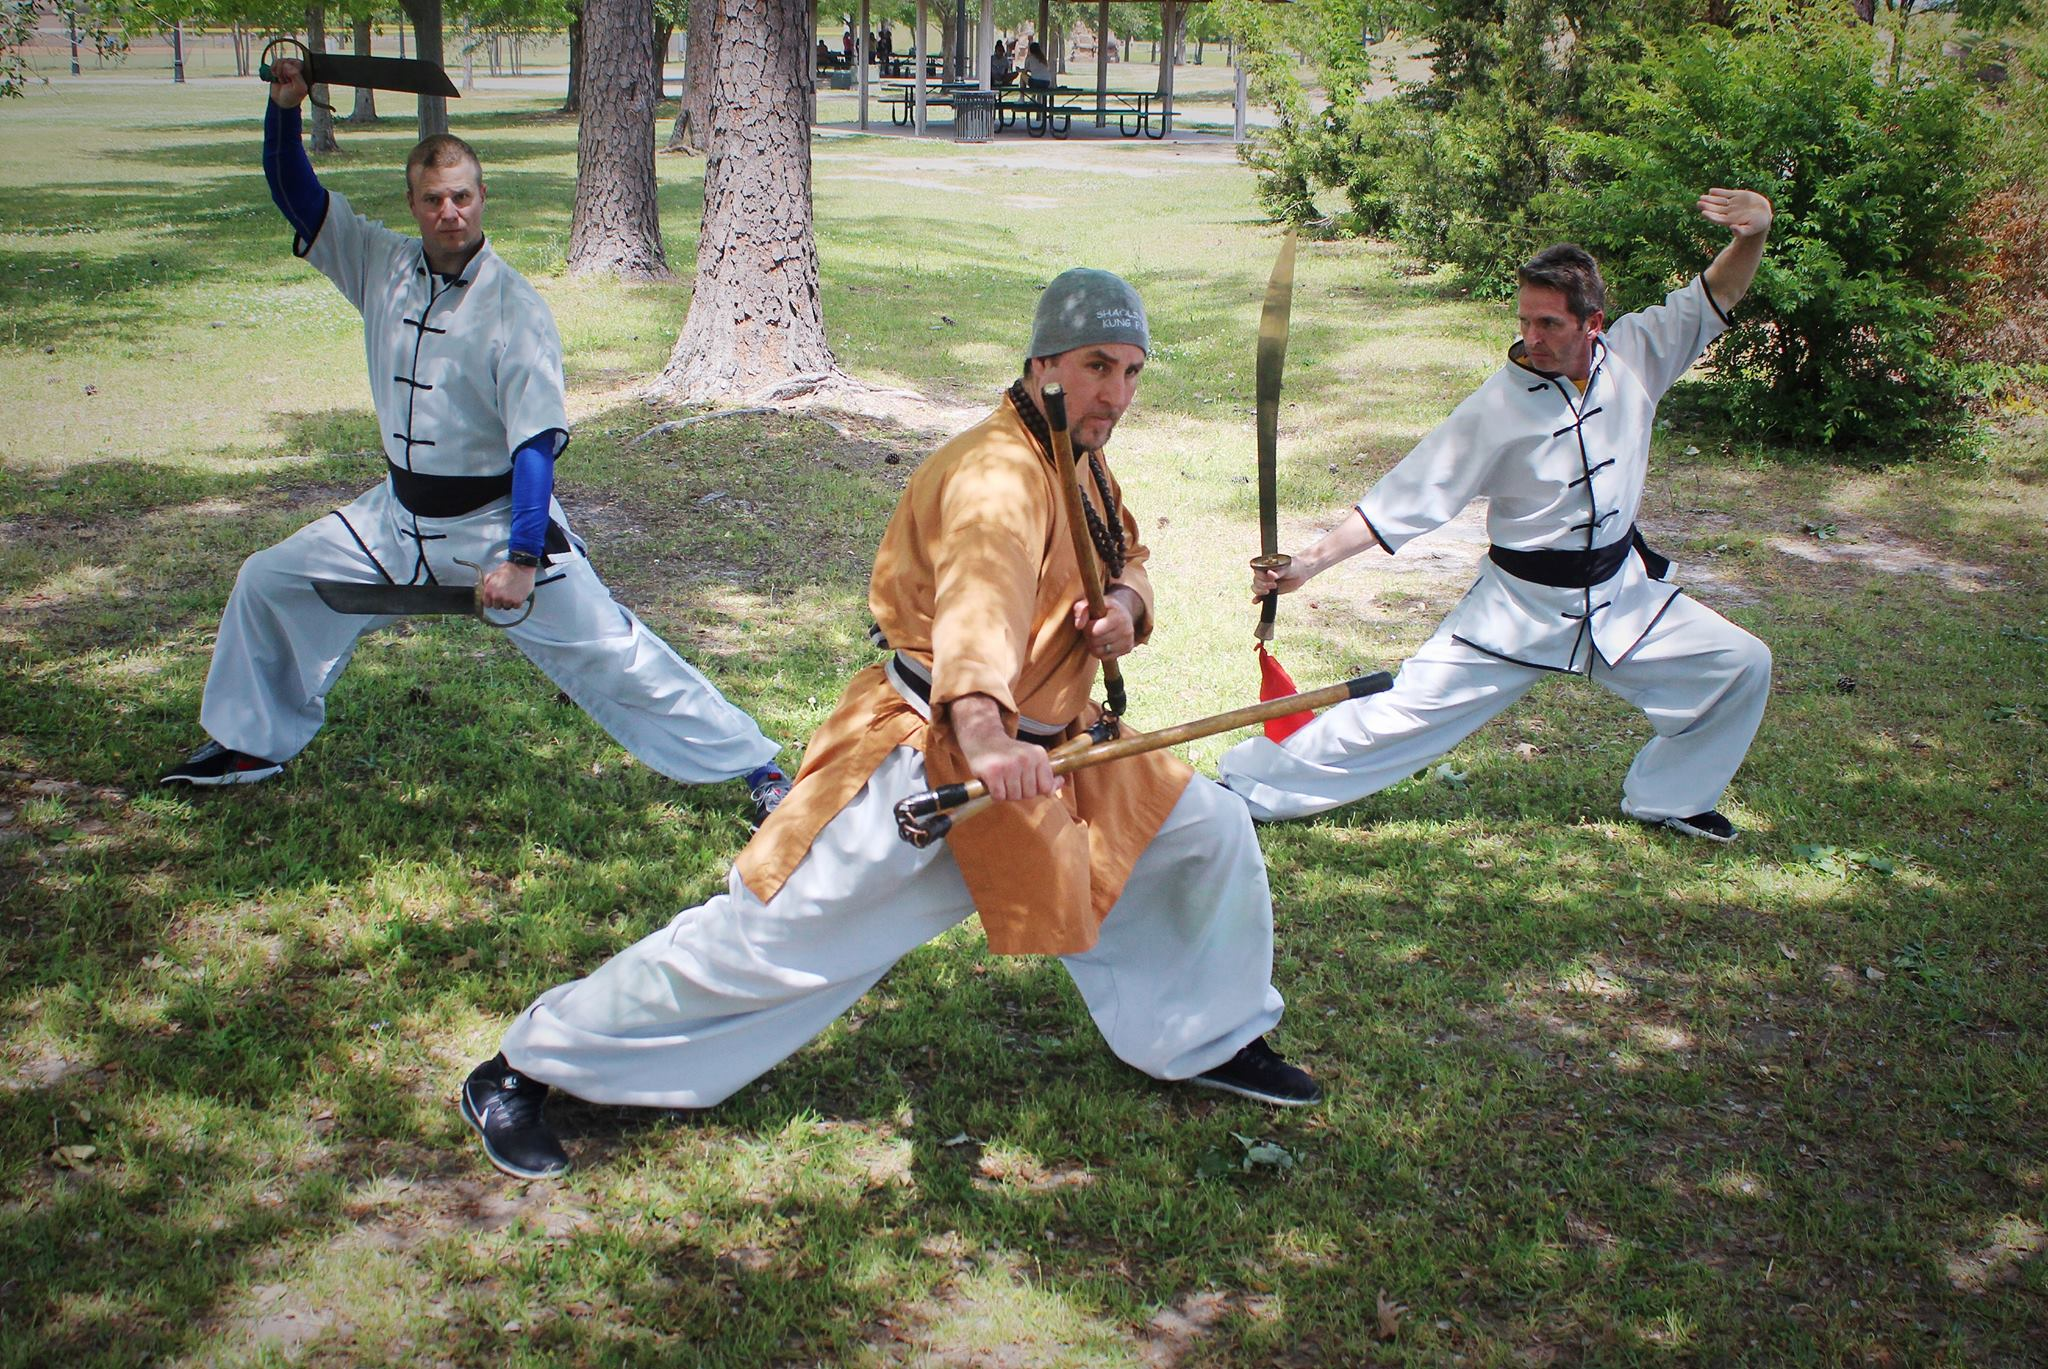 shigung and laoshis 2.jpg